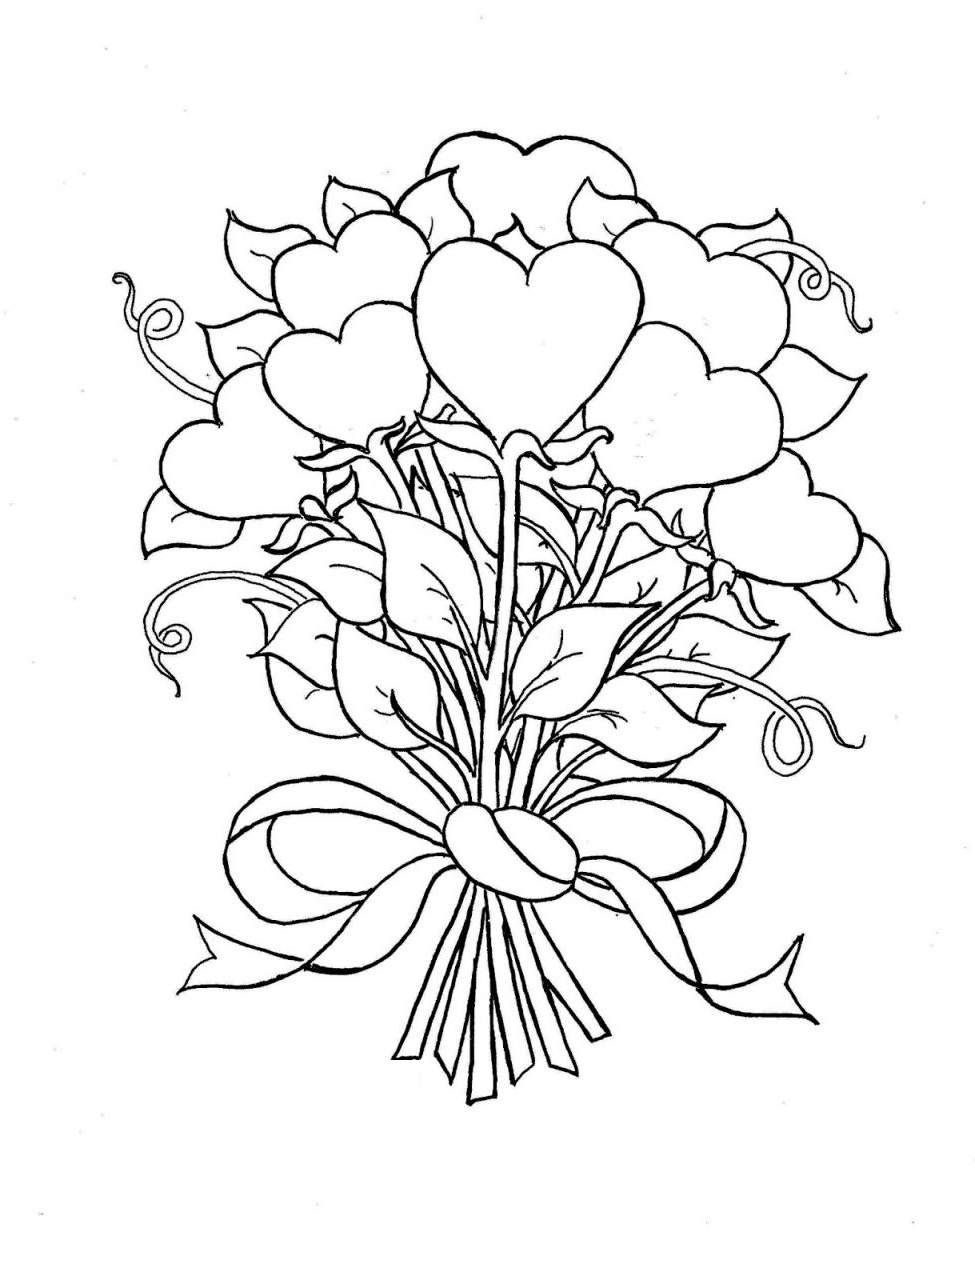 coloring pictures of flowers and hearts heart coloring pages heart coloring pages rose coloring hearts flowers coloring and of pictures